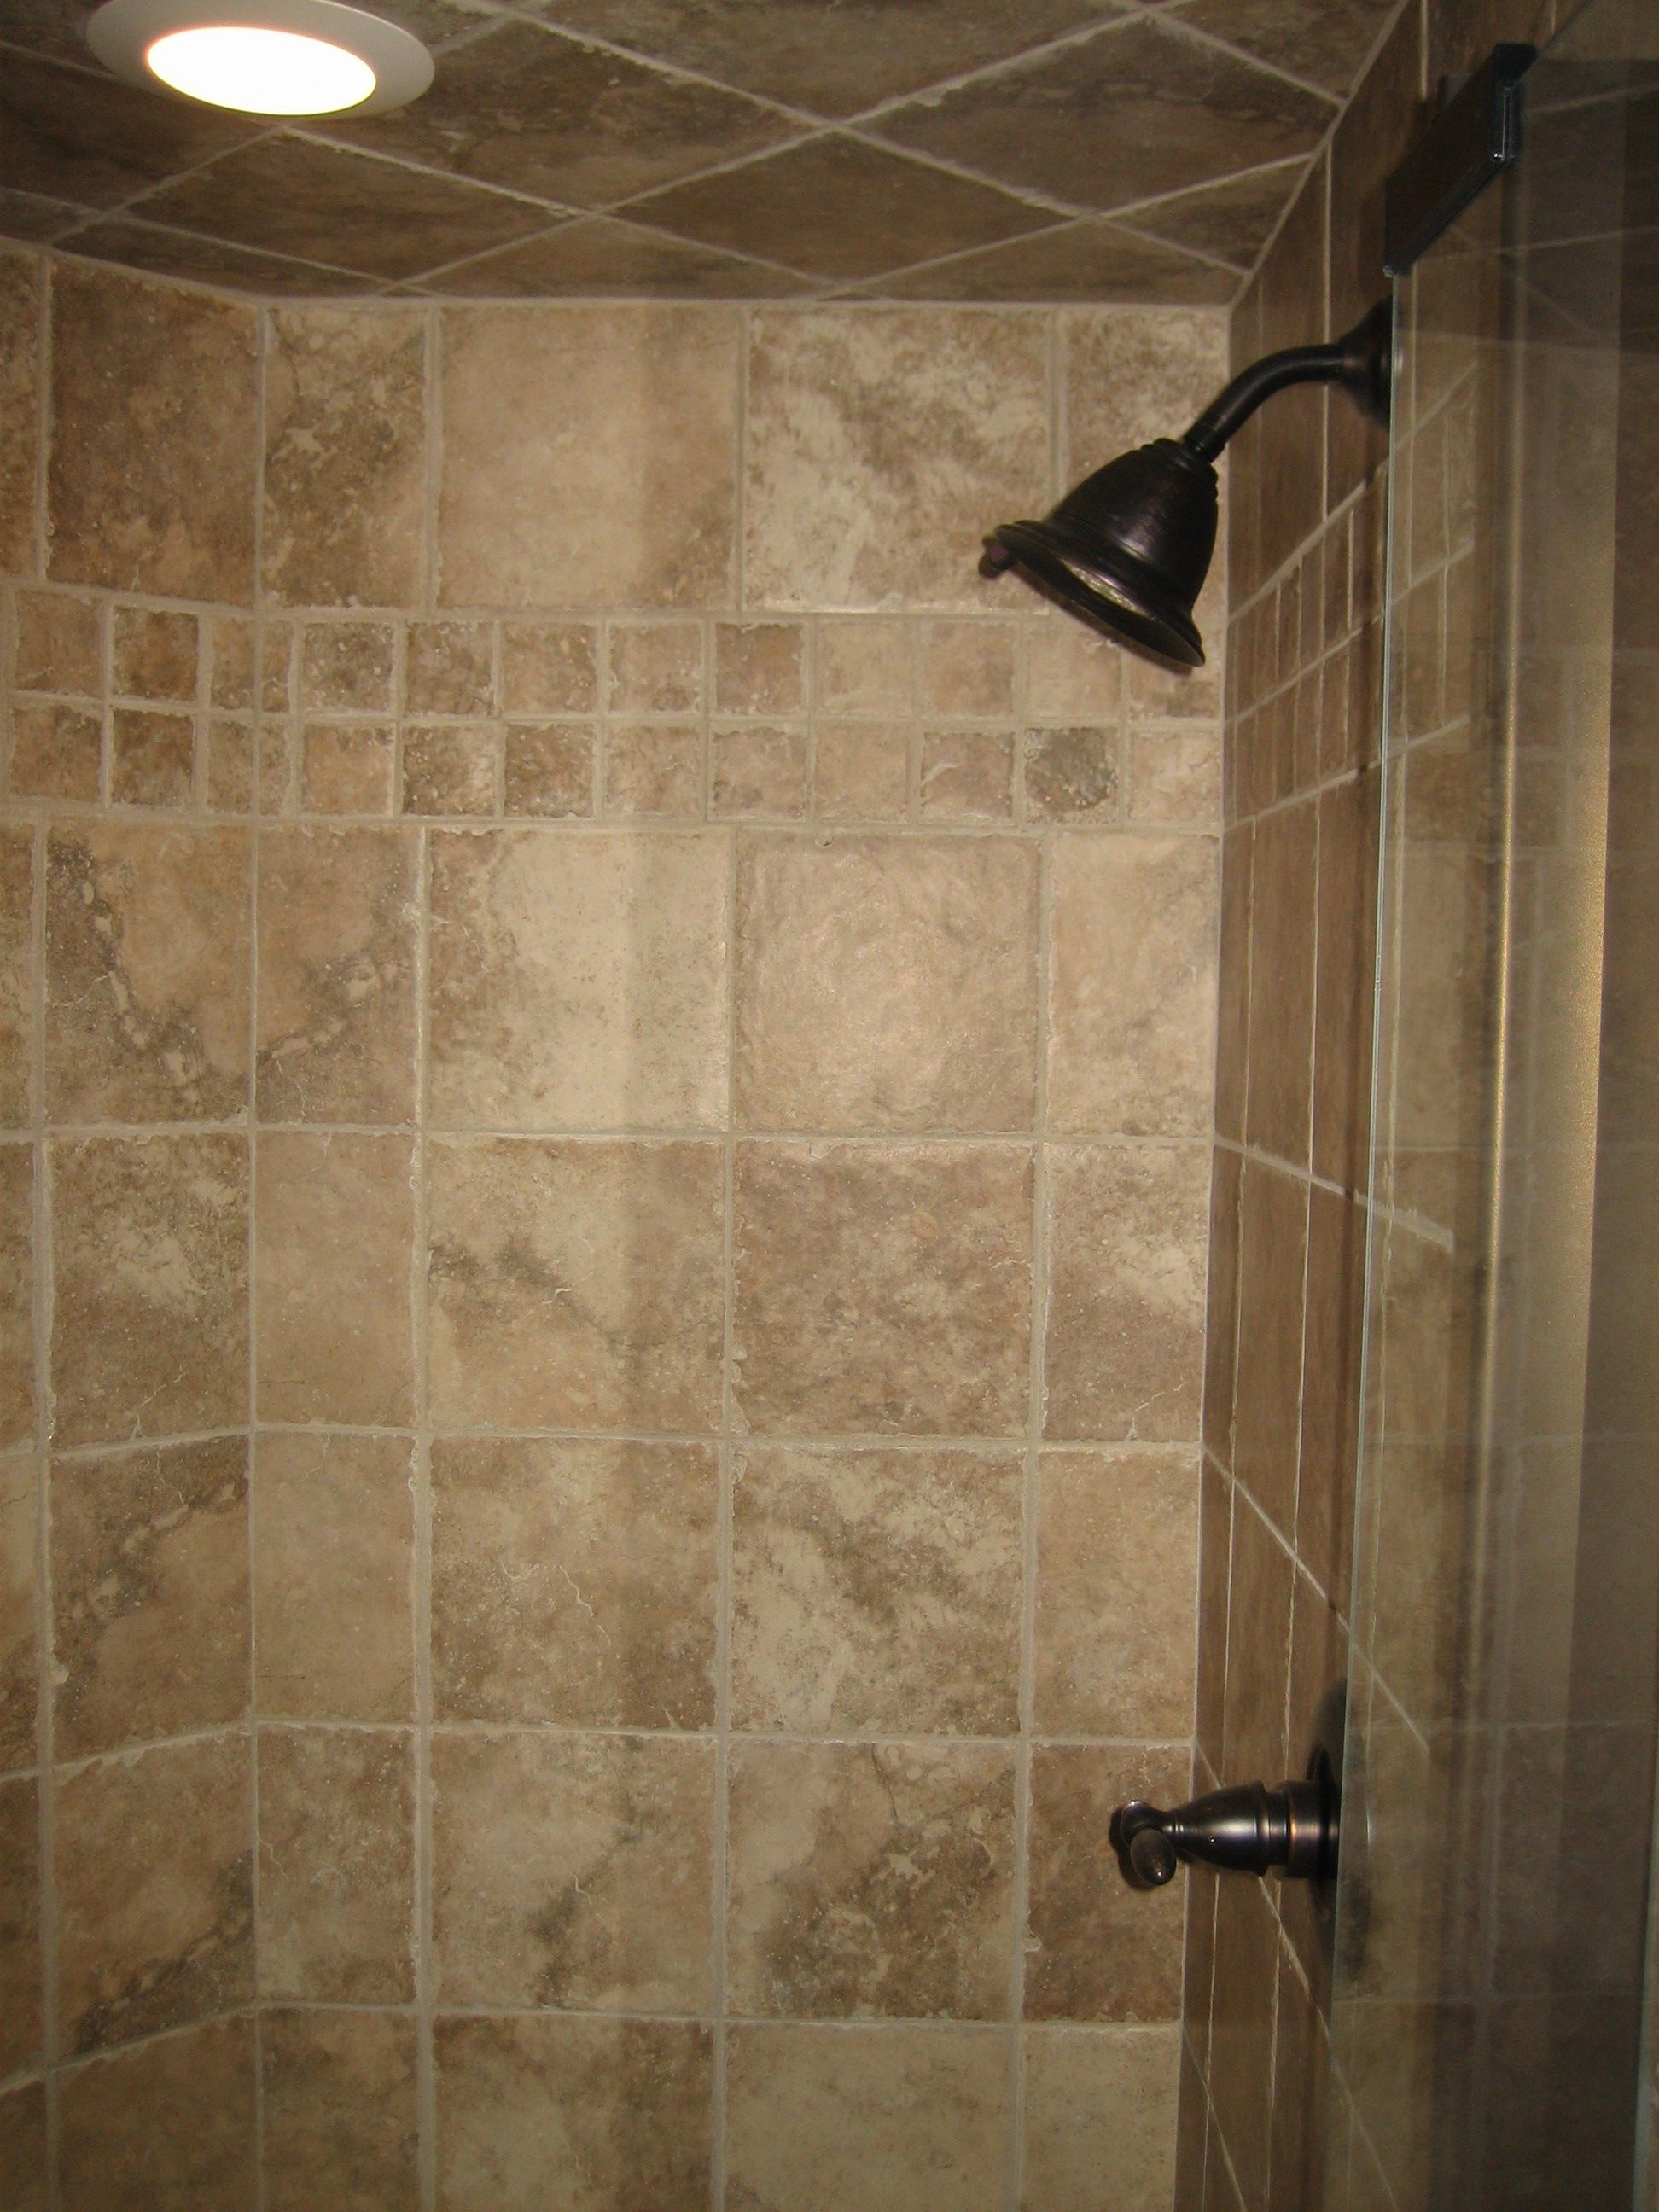 Shower With Band Insert Ceiling Tile 2 2008 Shower